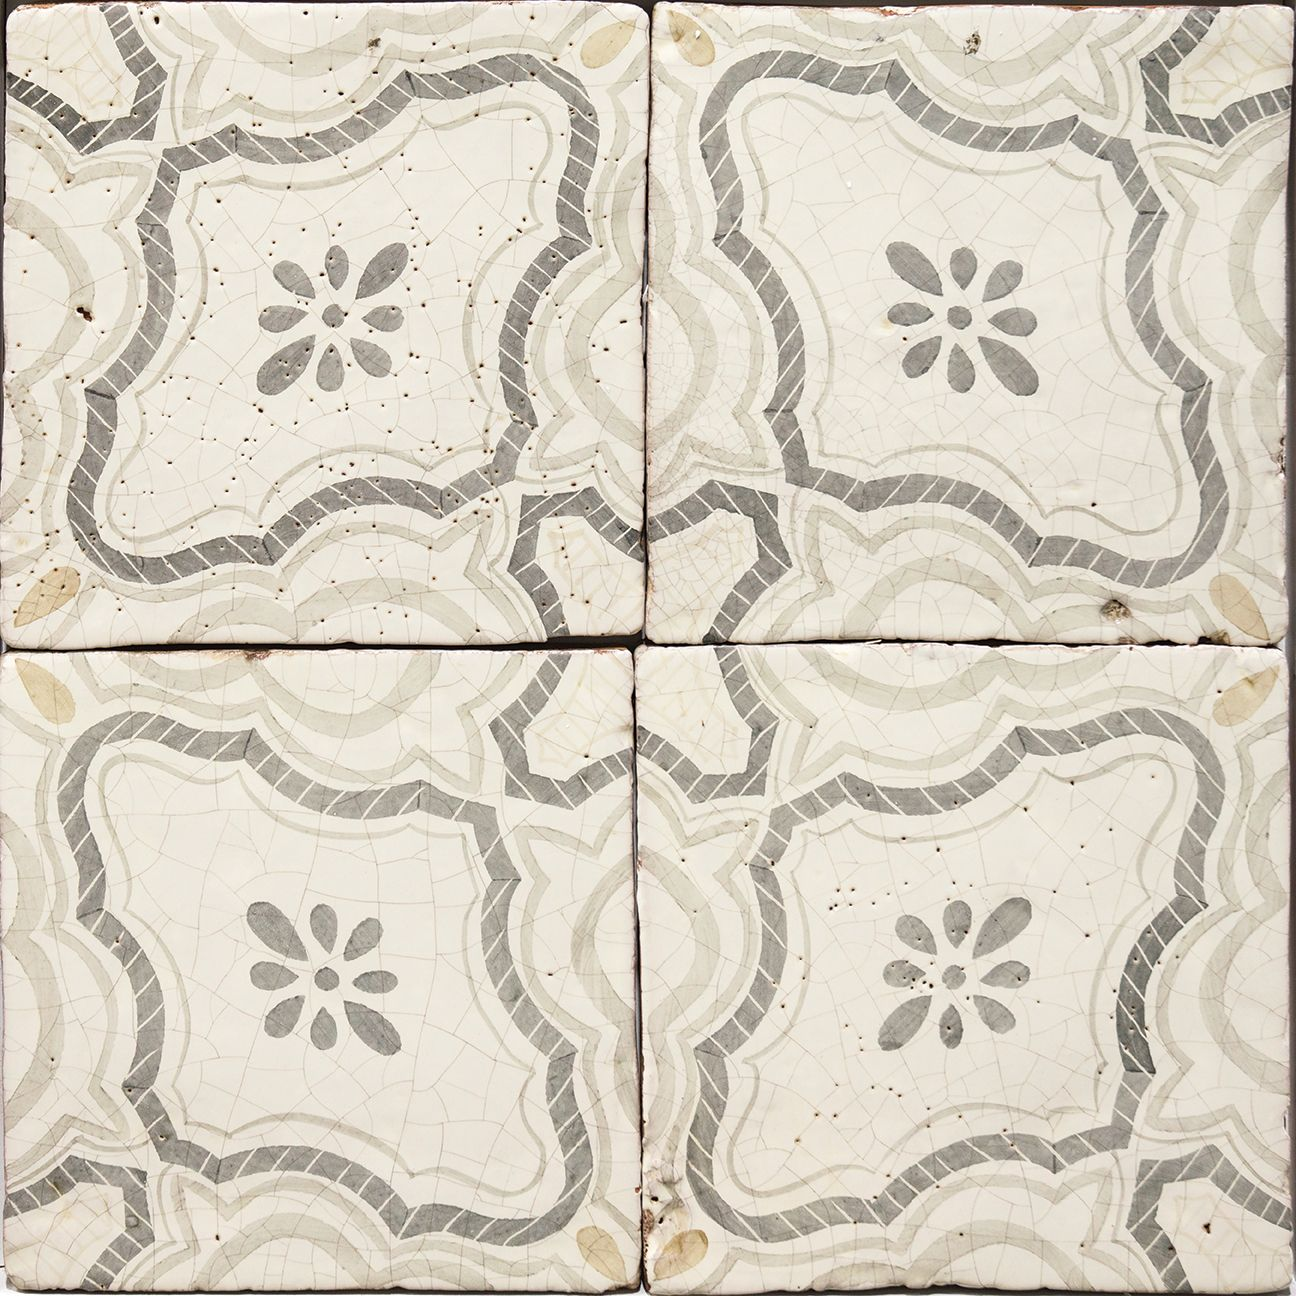 Taking Inspiration From 19th And 20th Century Sicilian Baldosa Style Tiles Marsala Pays Homage To The Lively Imperfect Nature O Style Tile Flooring Handcraft